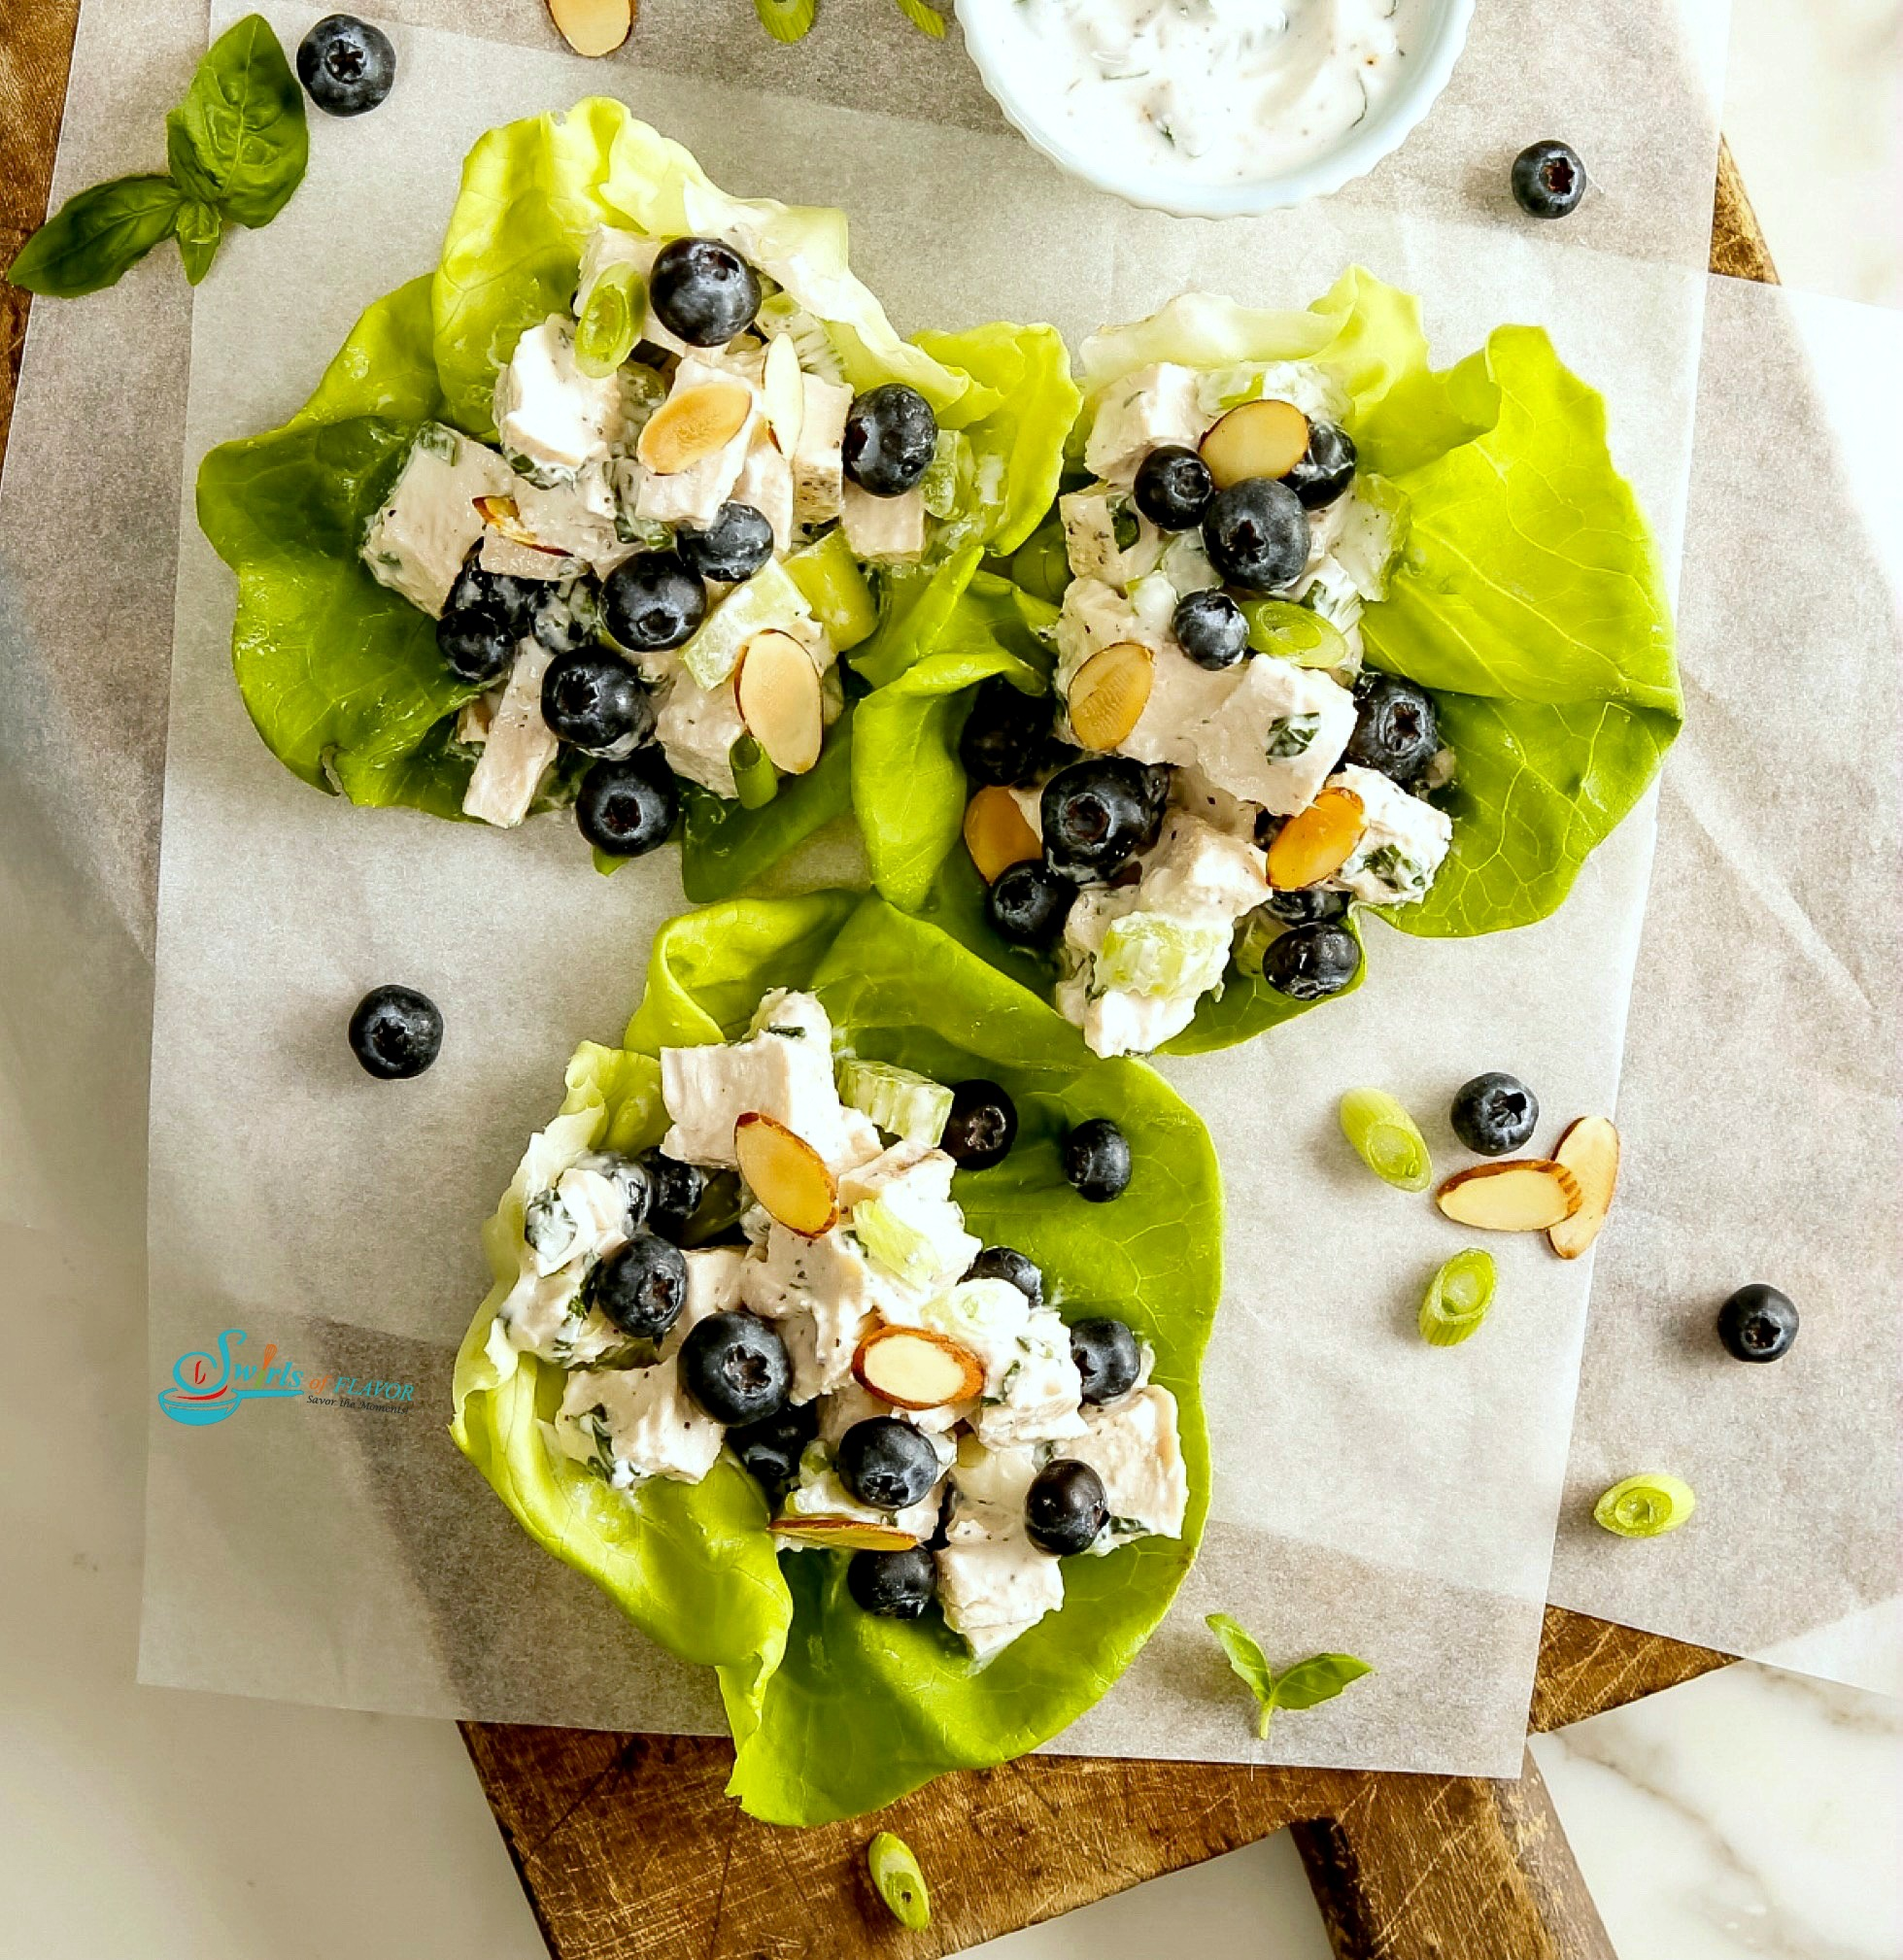 Chicken Salad lettuce wraps on a wooden board